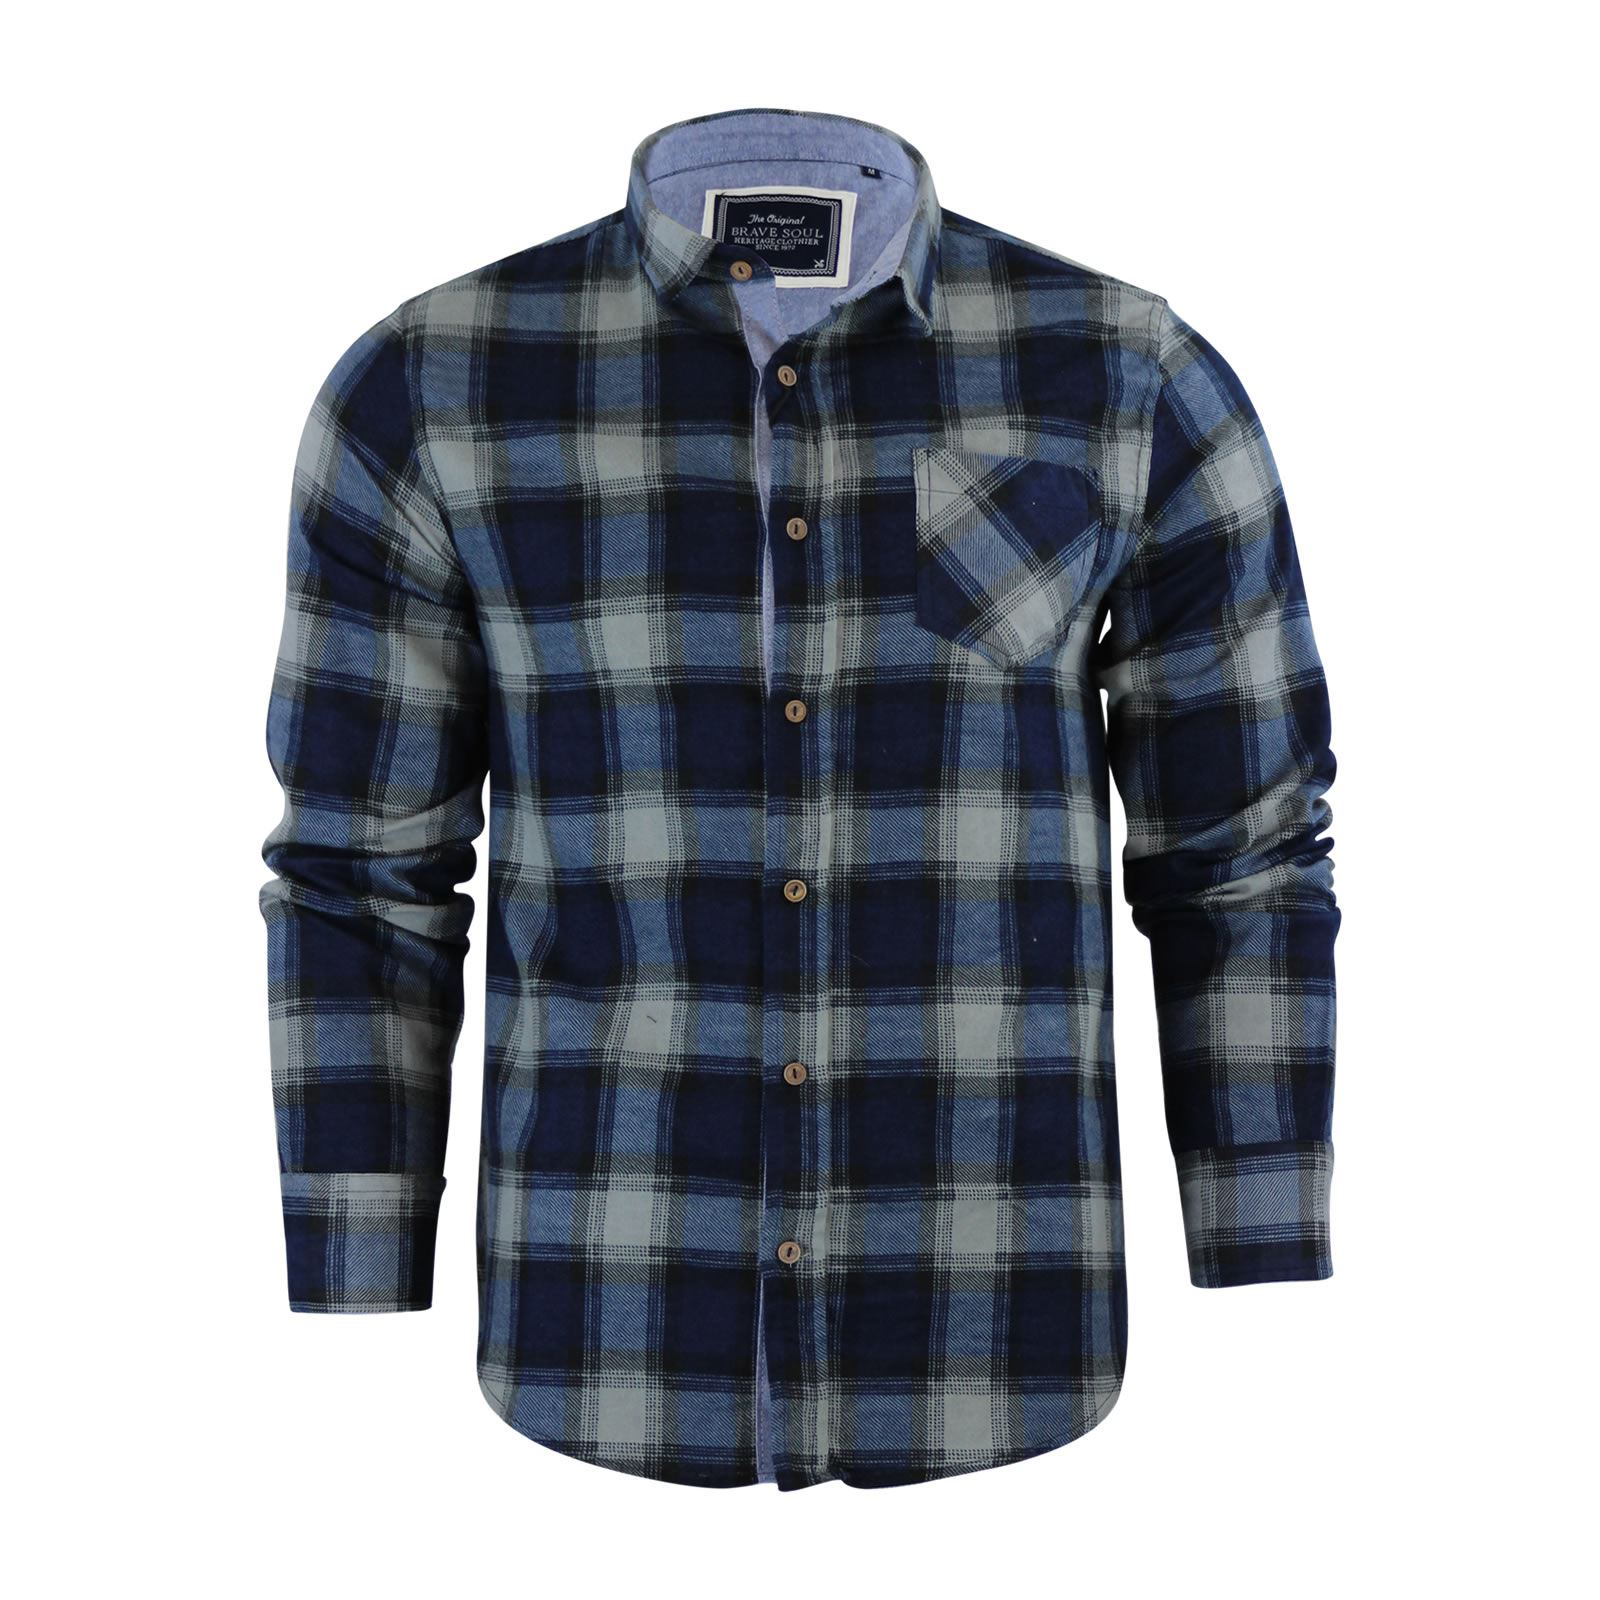 Brave-Soul-Mens-Check-Shirt-Flannel-Brushed-Cotton-Long-Sleeve-Casual-Top thumbnail 35